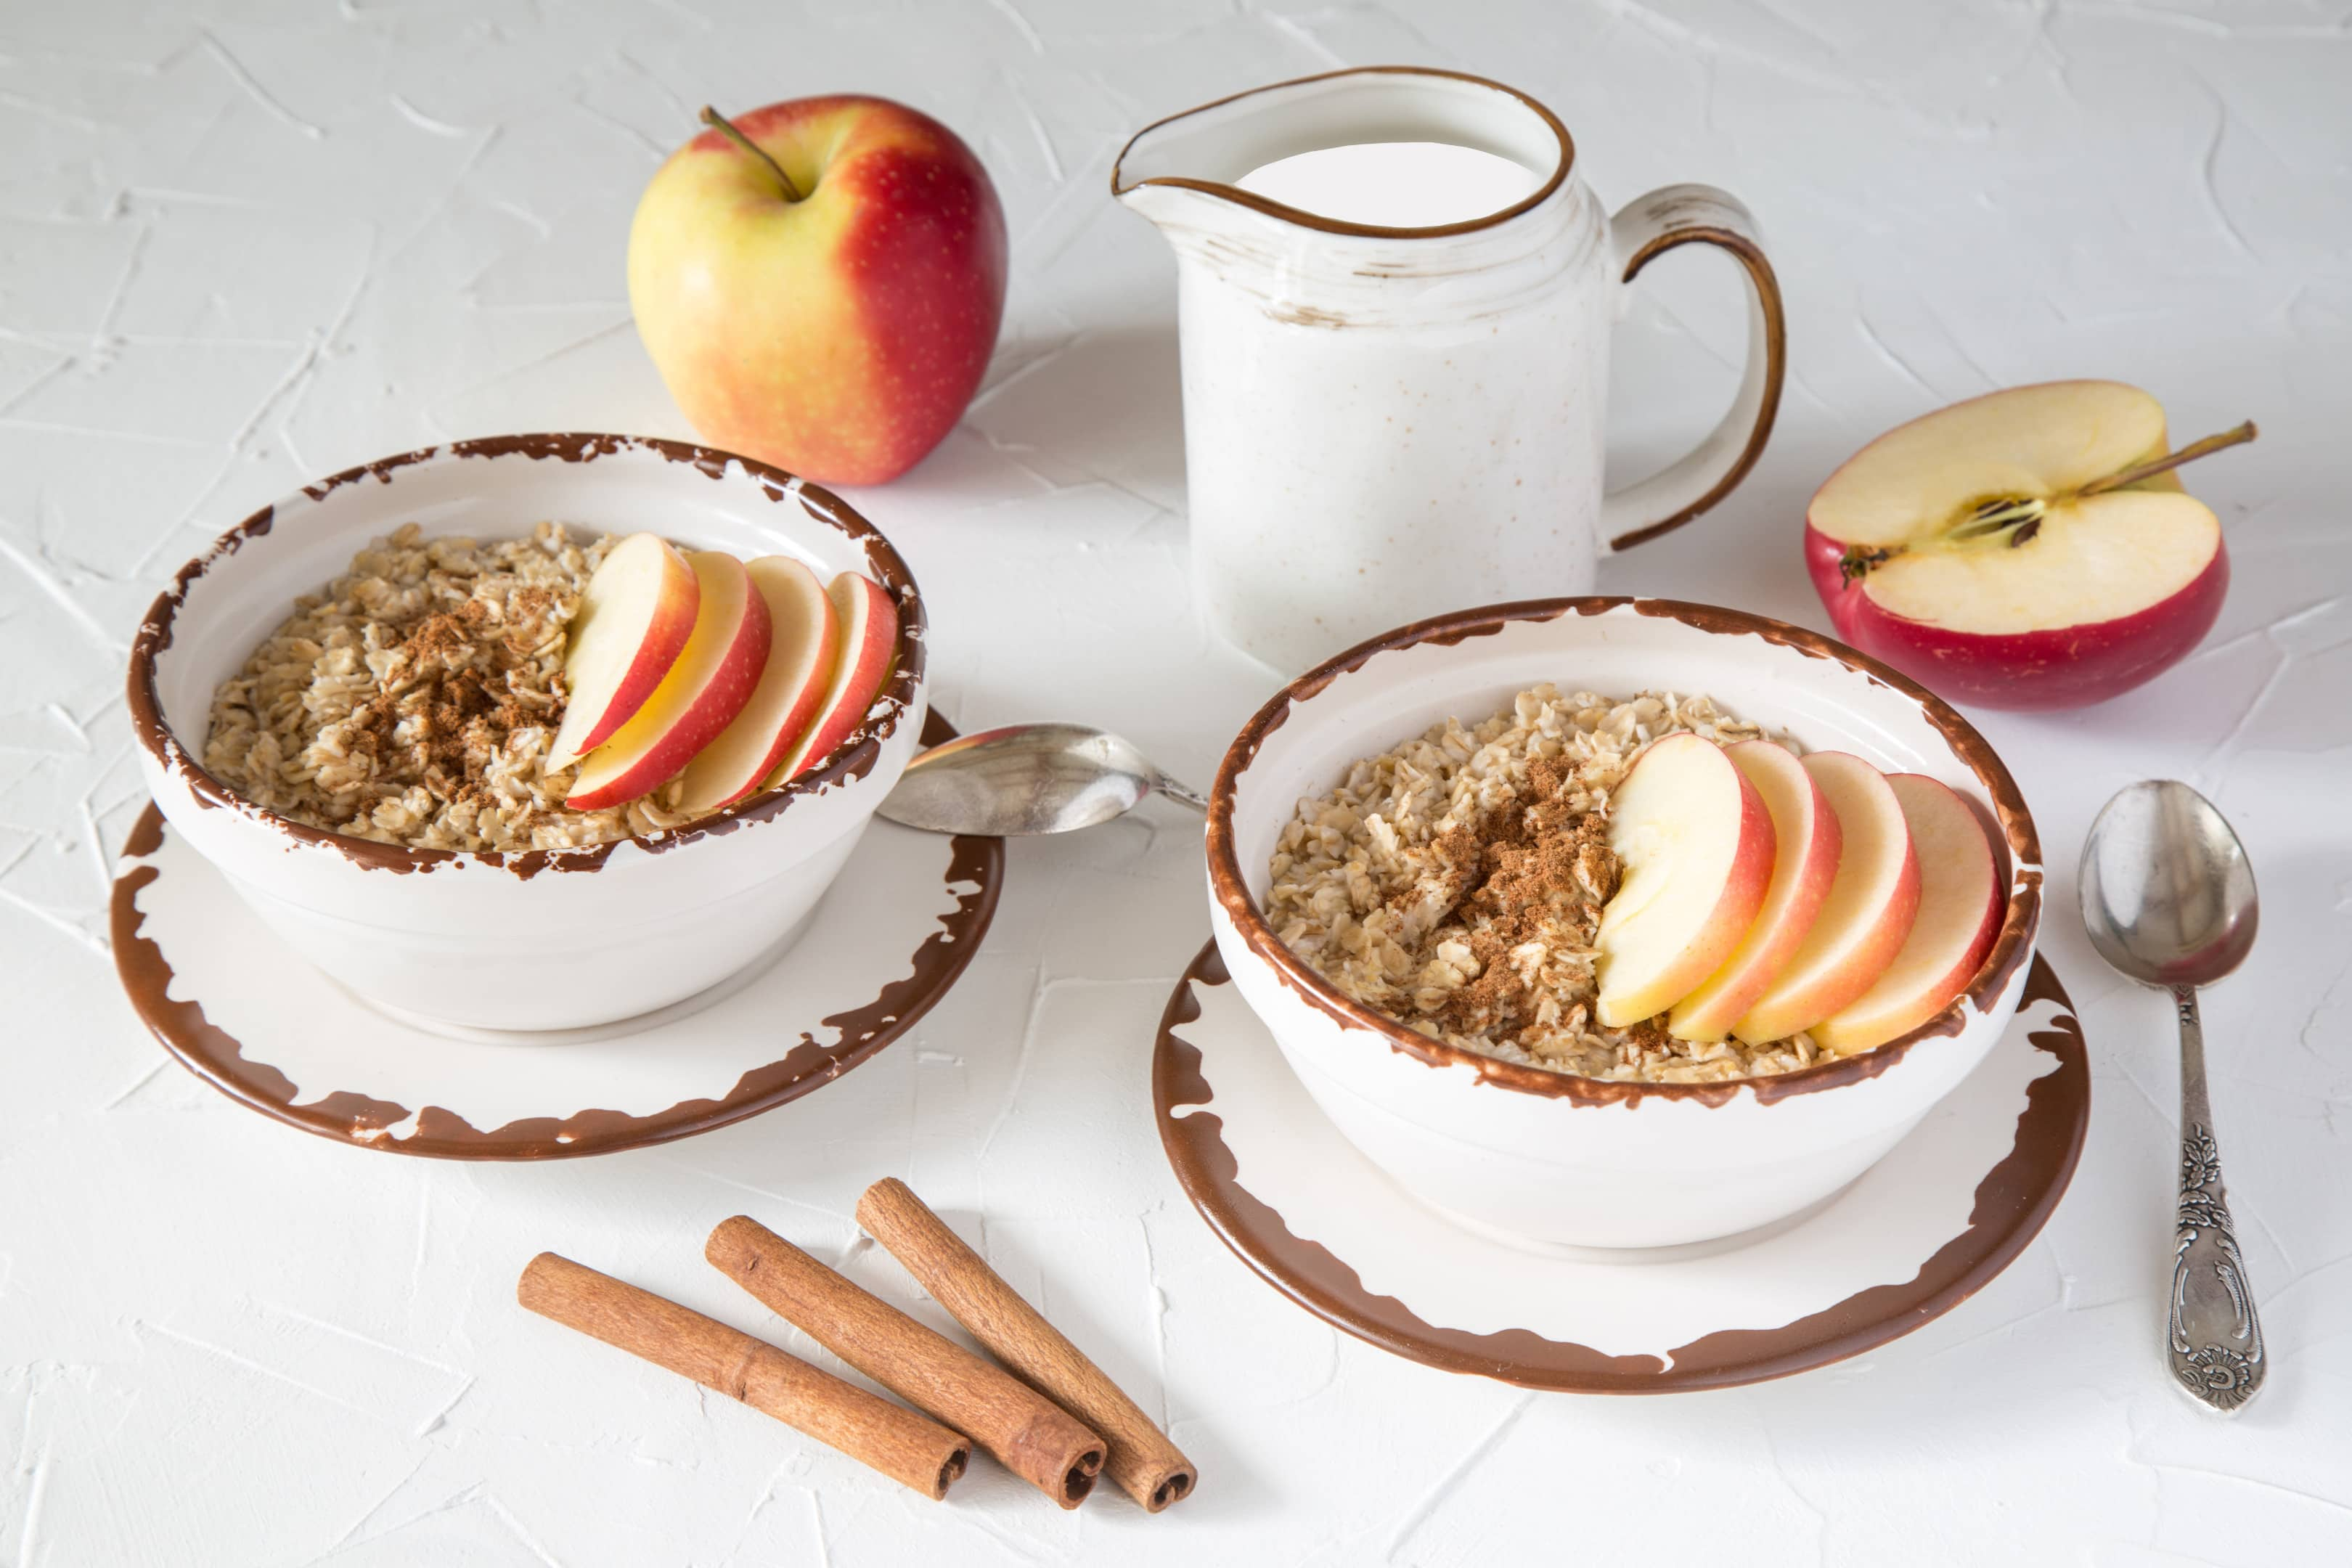 Rich fiber diet oatmeal with apple cinnamon and milk